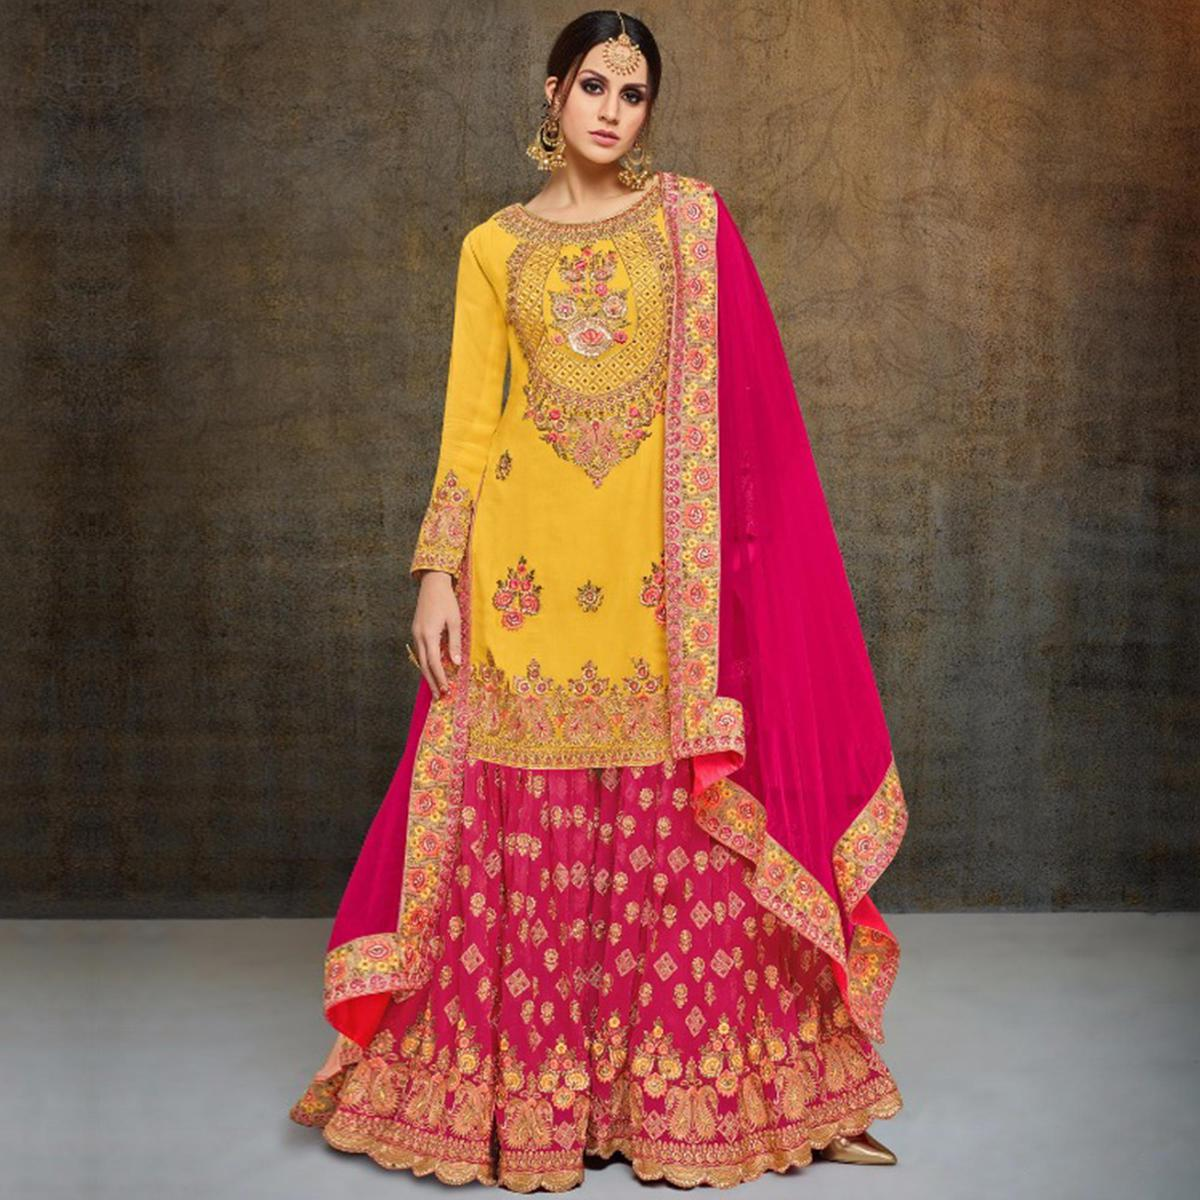 6076826d2e7 Buy Glowing Yellow-Pink Colored Partywear Heavy Embroidered Georgette  Palazzo Suit for womens online India